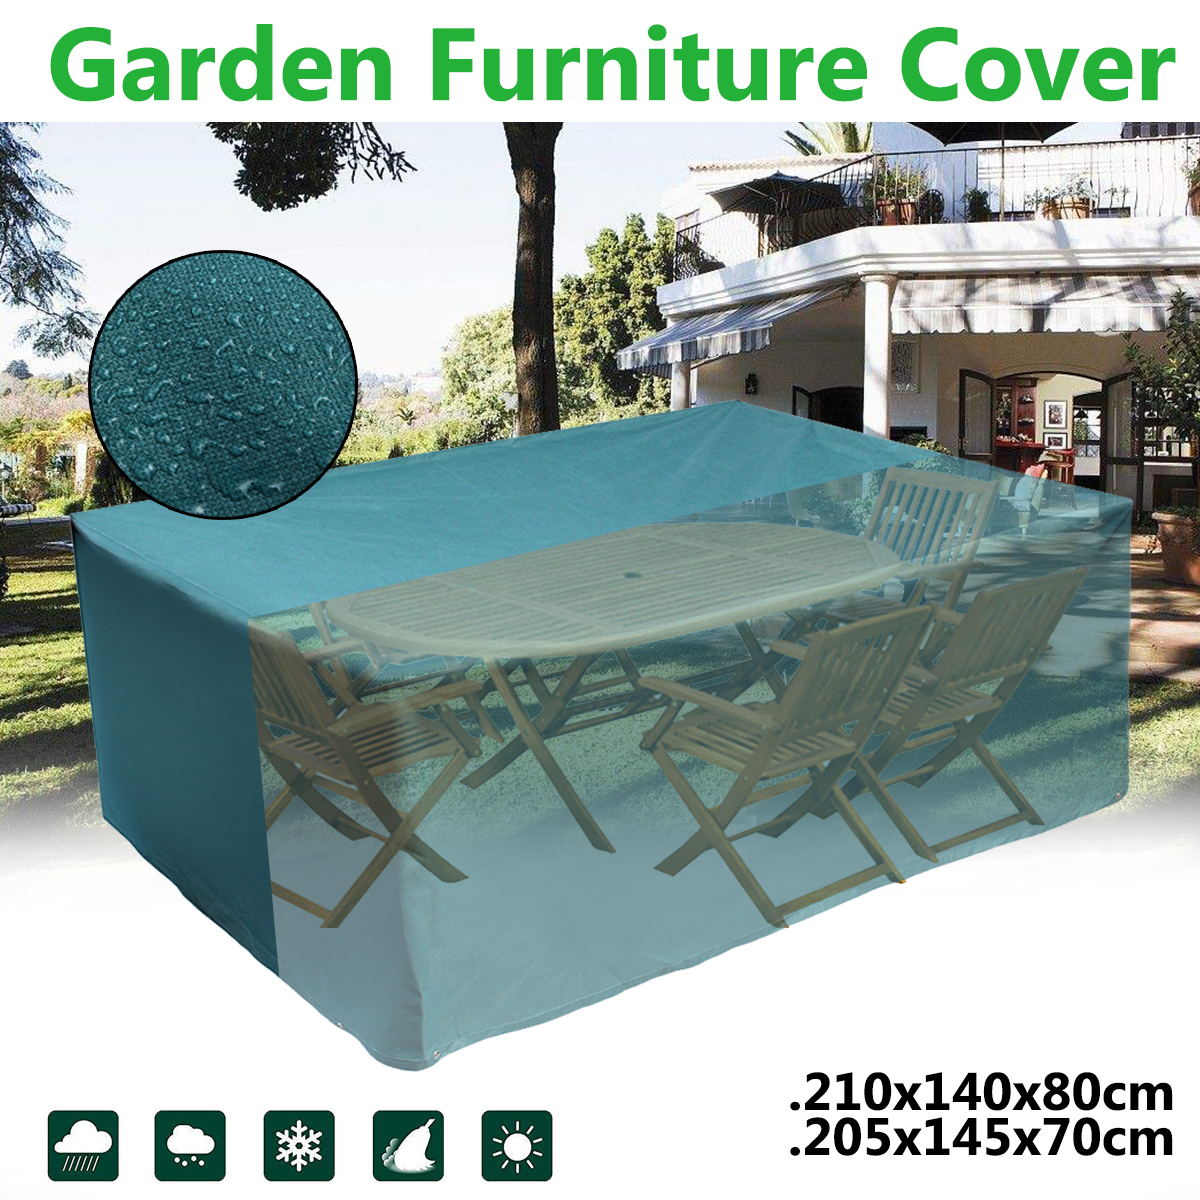 Outdoor Garden Furniture Rain Cover Waterproof Oxford Wicker Sofa Chair Table Protector Garden Patio Rain Snow Dustproof Covers